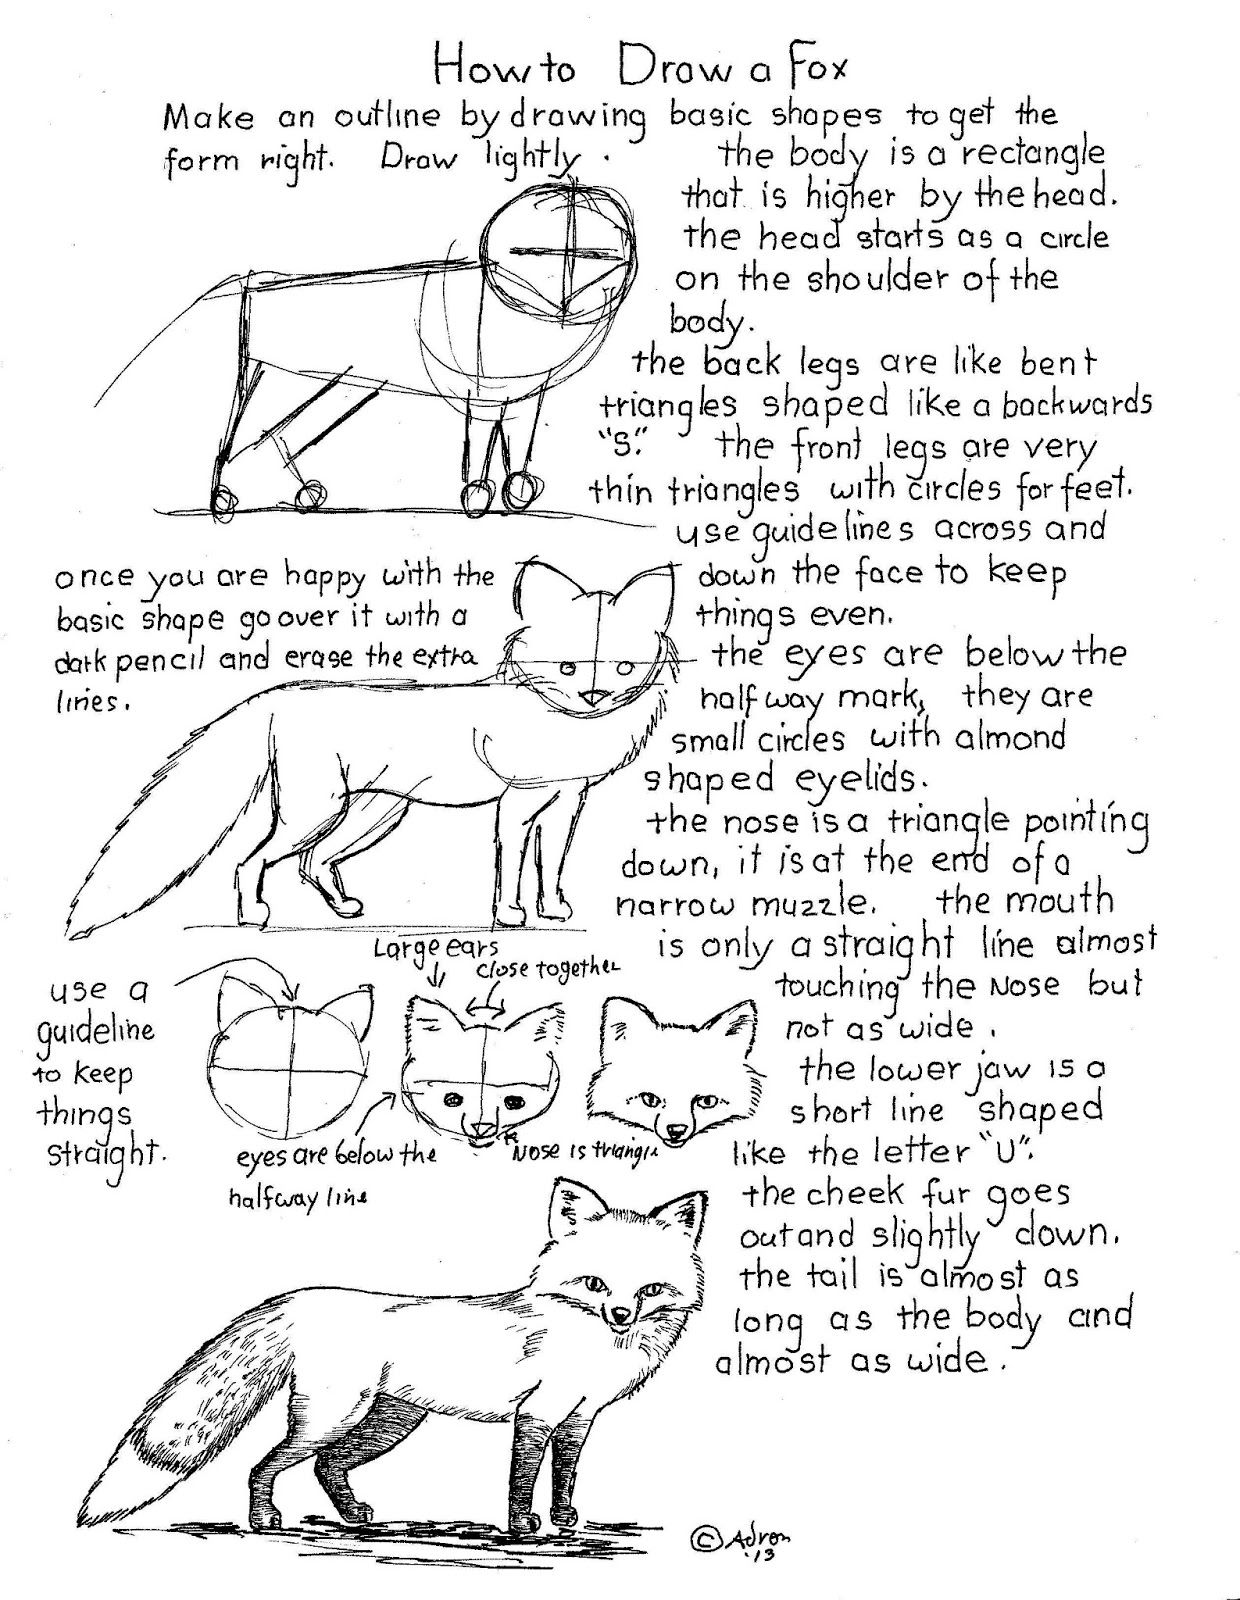 how to draw worksheets for the young artist how to draw a fox worksheet - How To Draw Printables